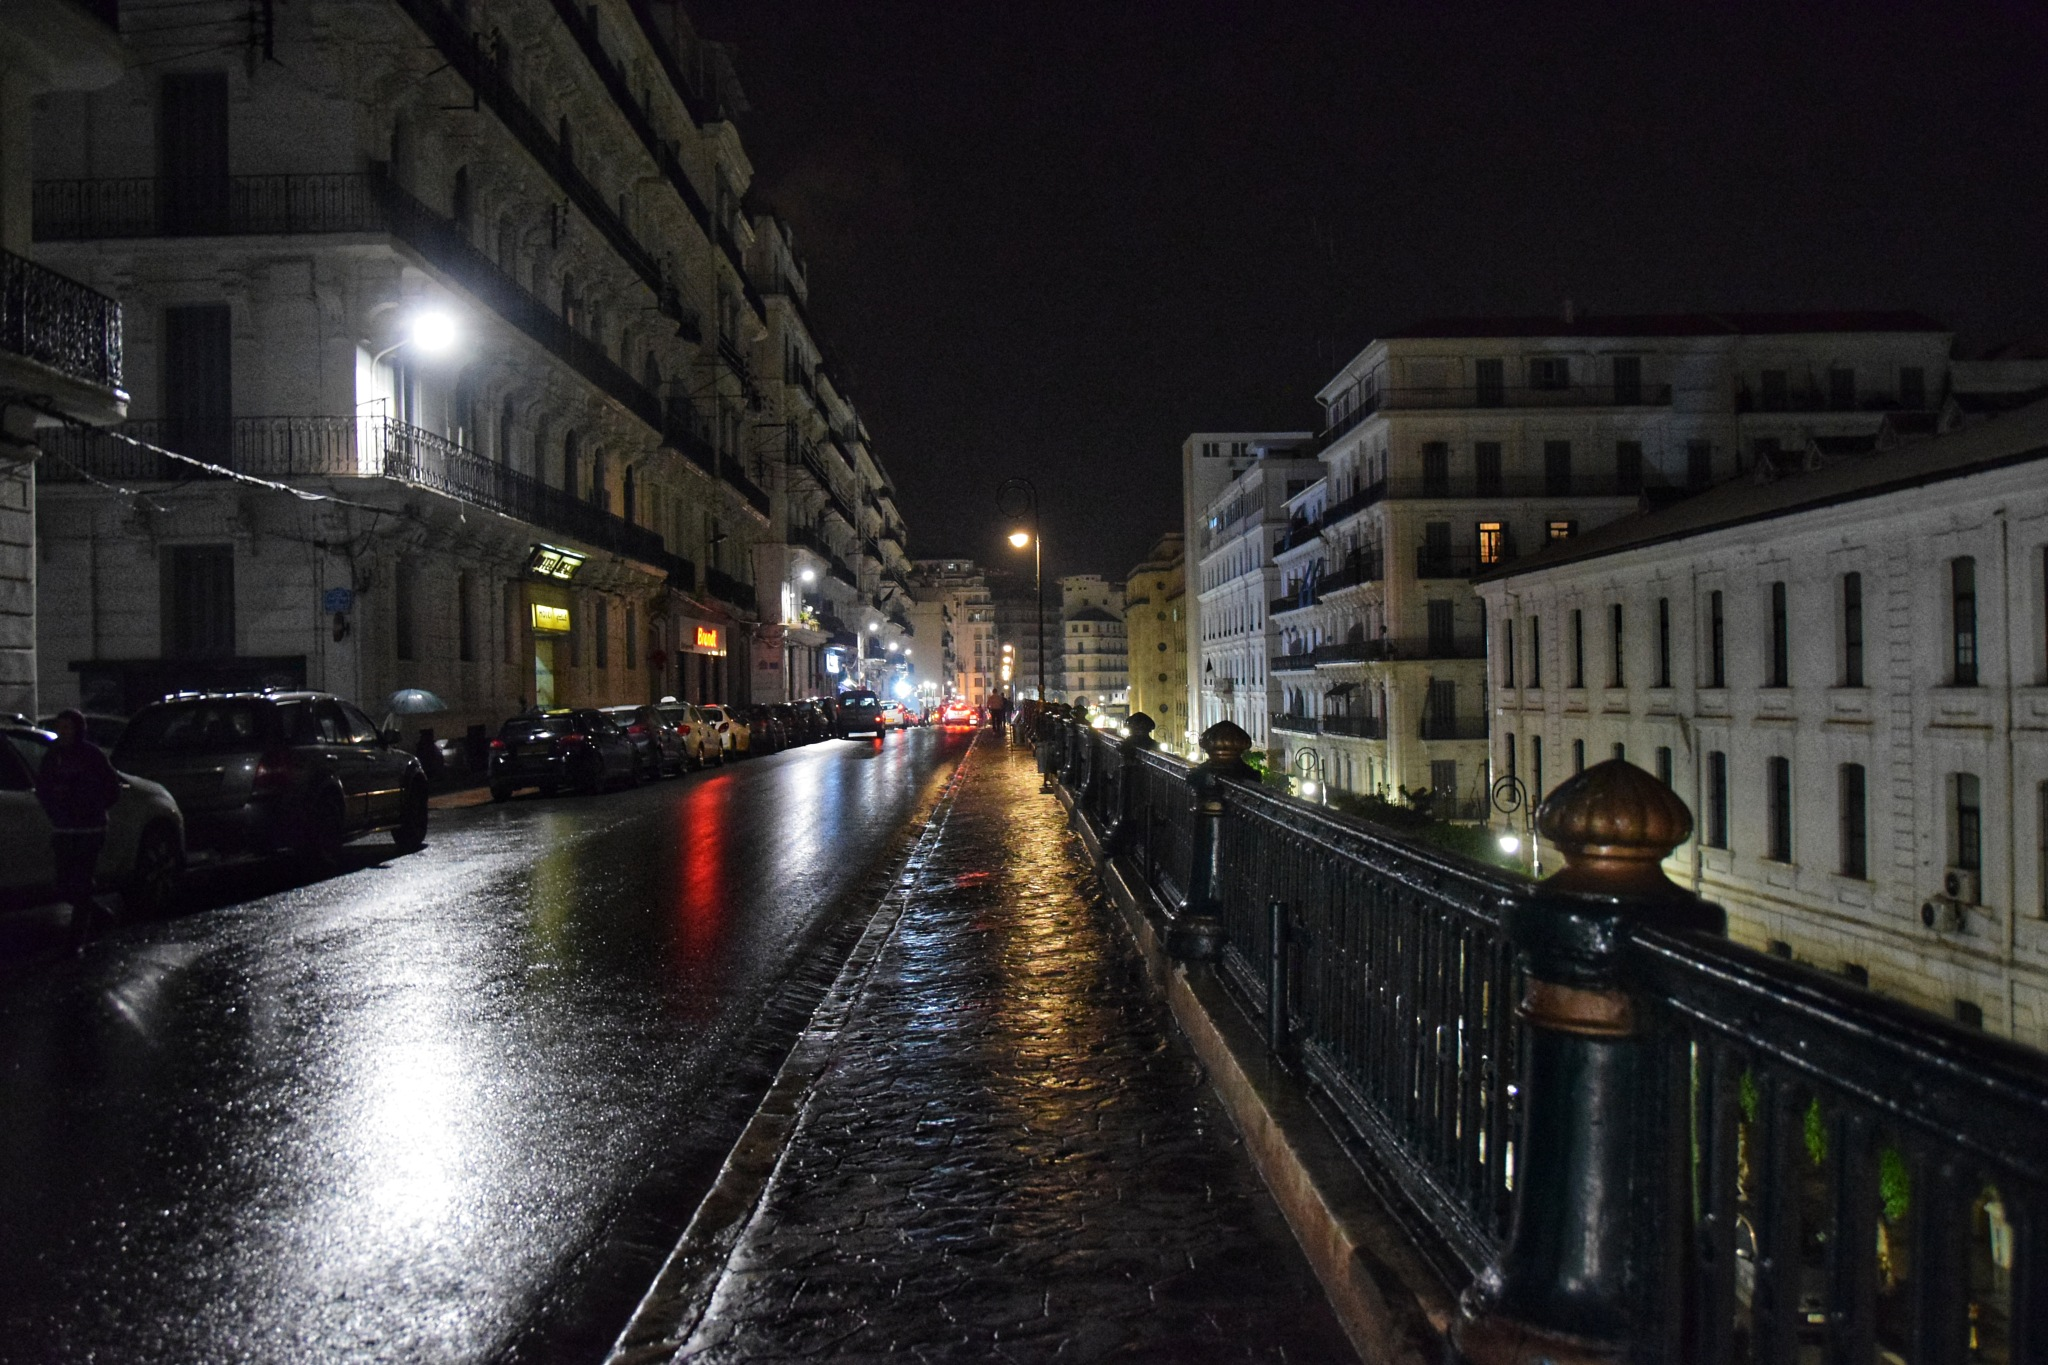 algiers by night by Ghanou Dah